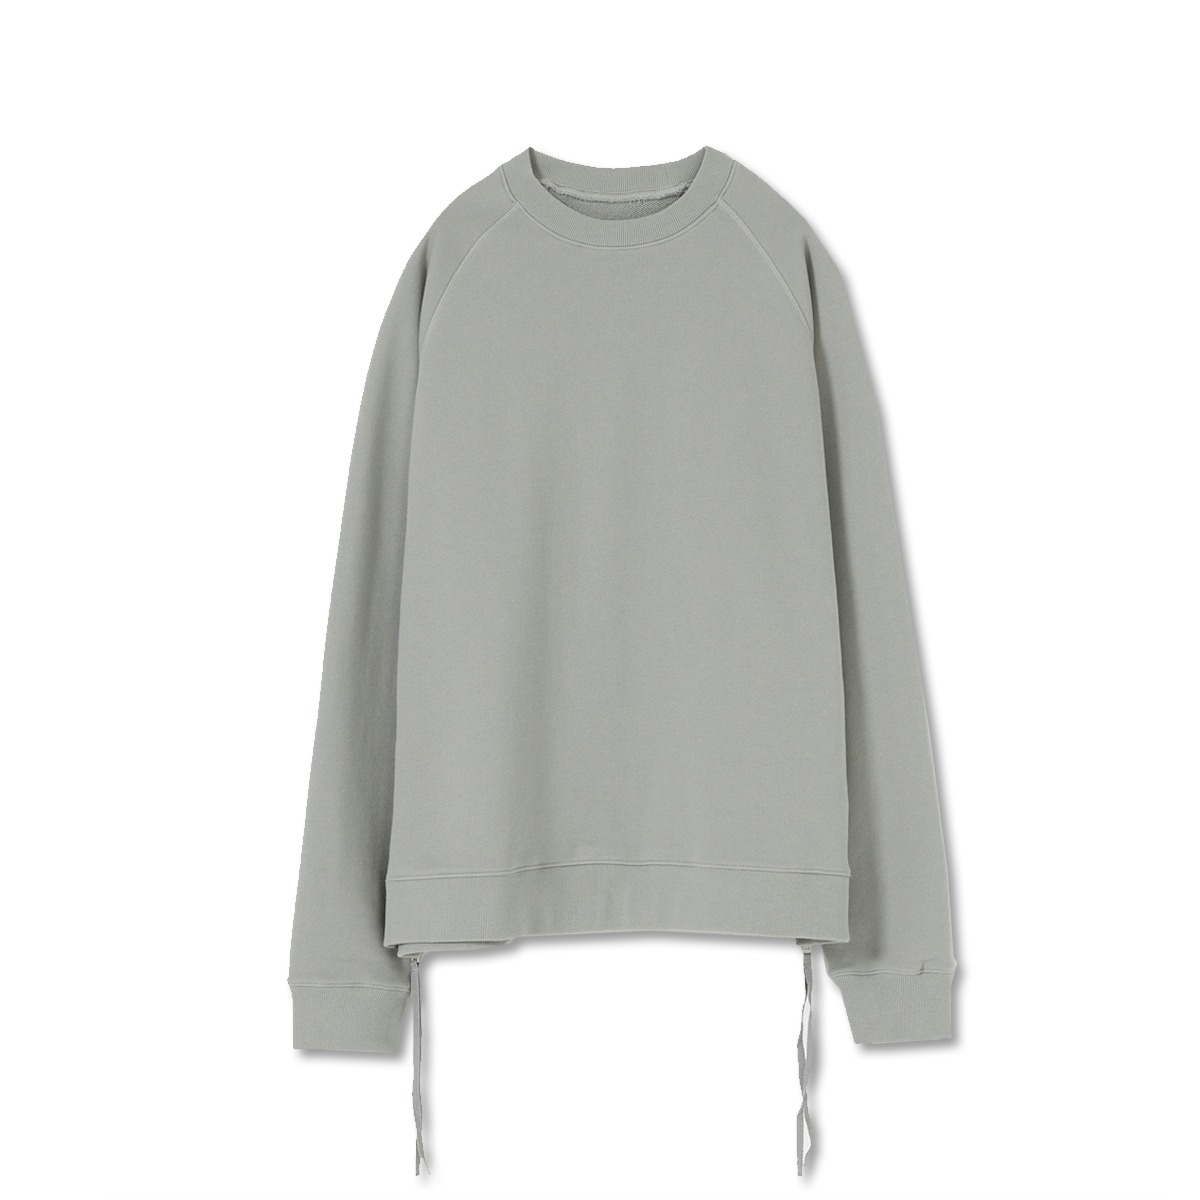 [YOUTH] SIDE ZIP-UP SWEATSHIRT 'MINT'